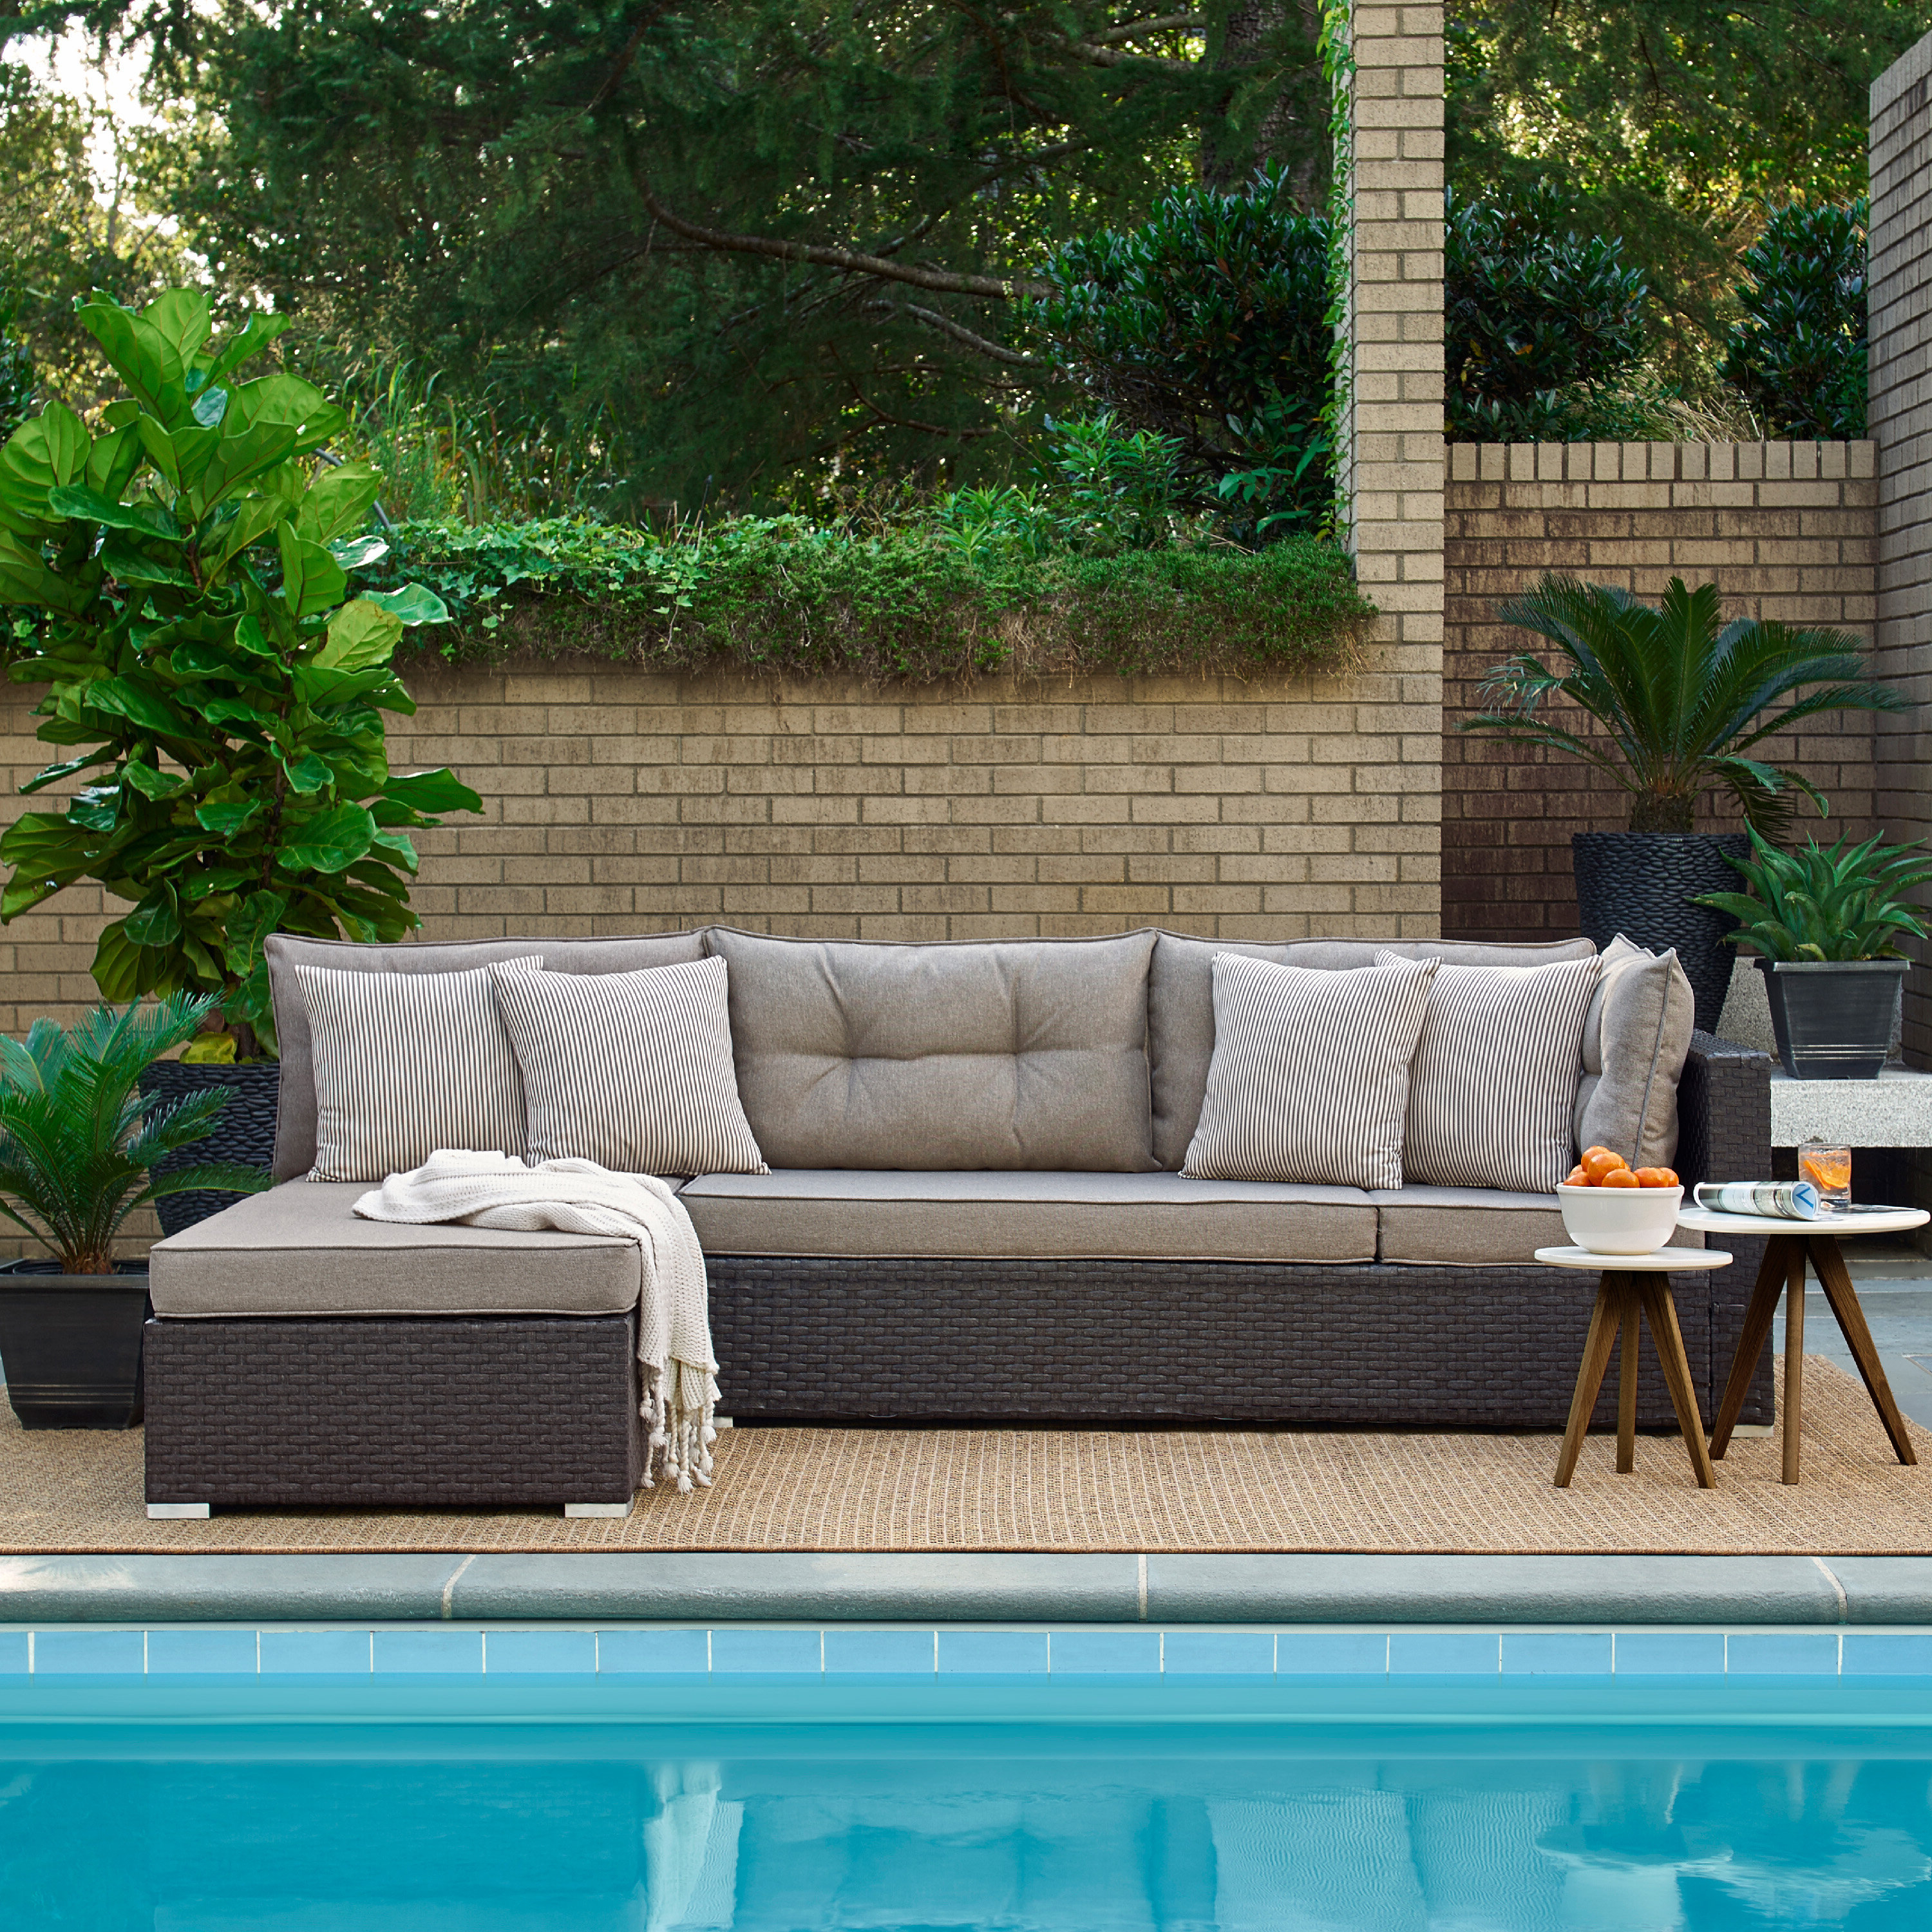 Preferred Ayden Patio Sectional With Cushions Throughout Nolen Patio Sectionals With Cushions (View 17 of 20)